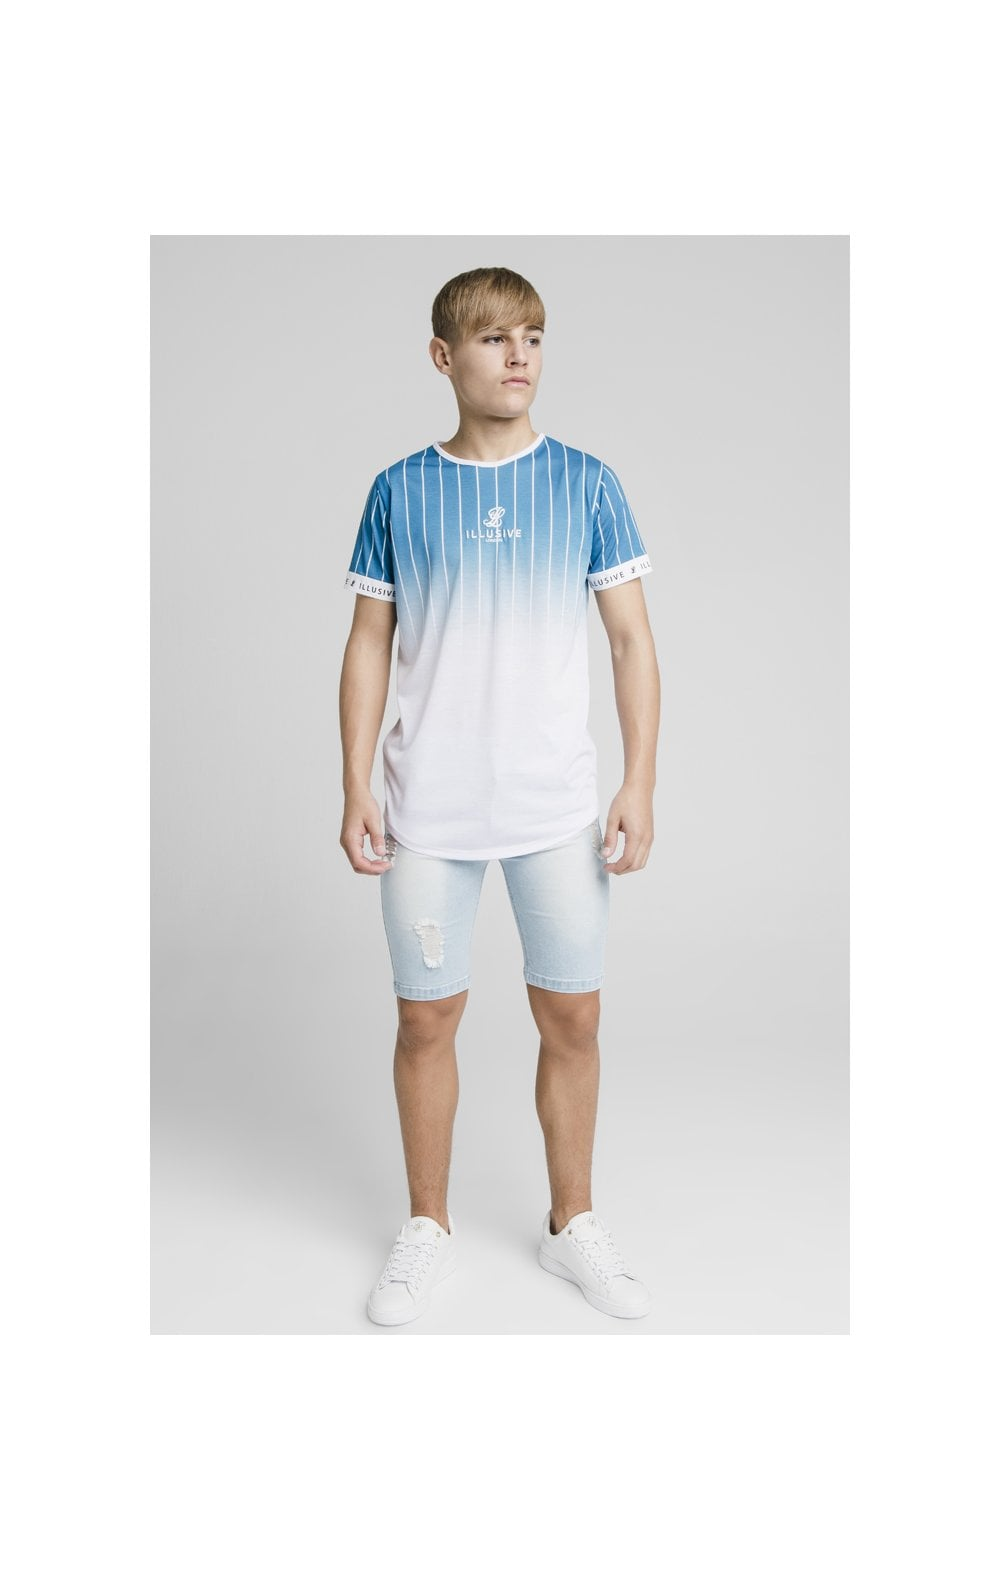 Illusive London Fade Stripe Tech Tee - Teal & White (3)